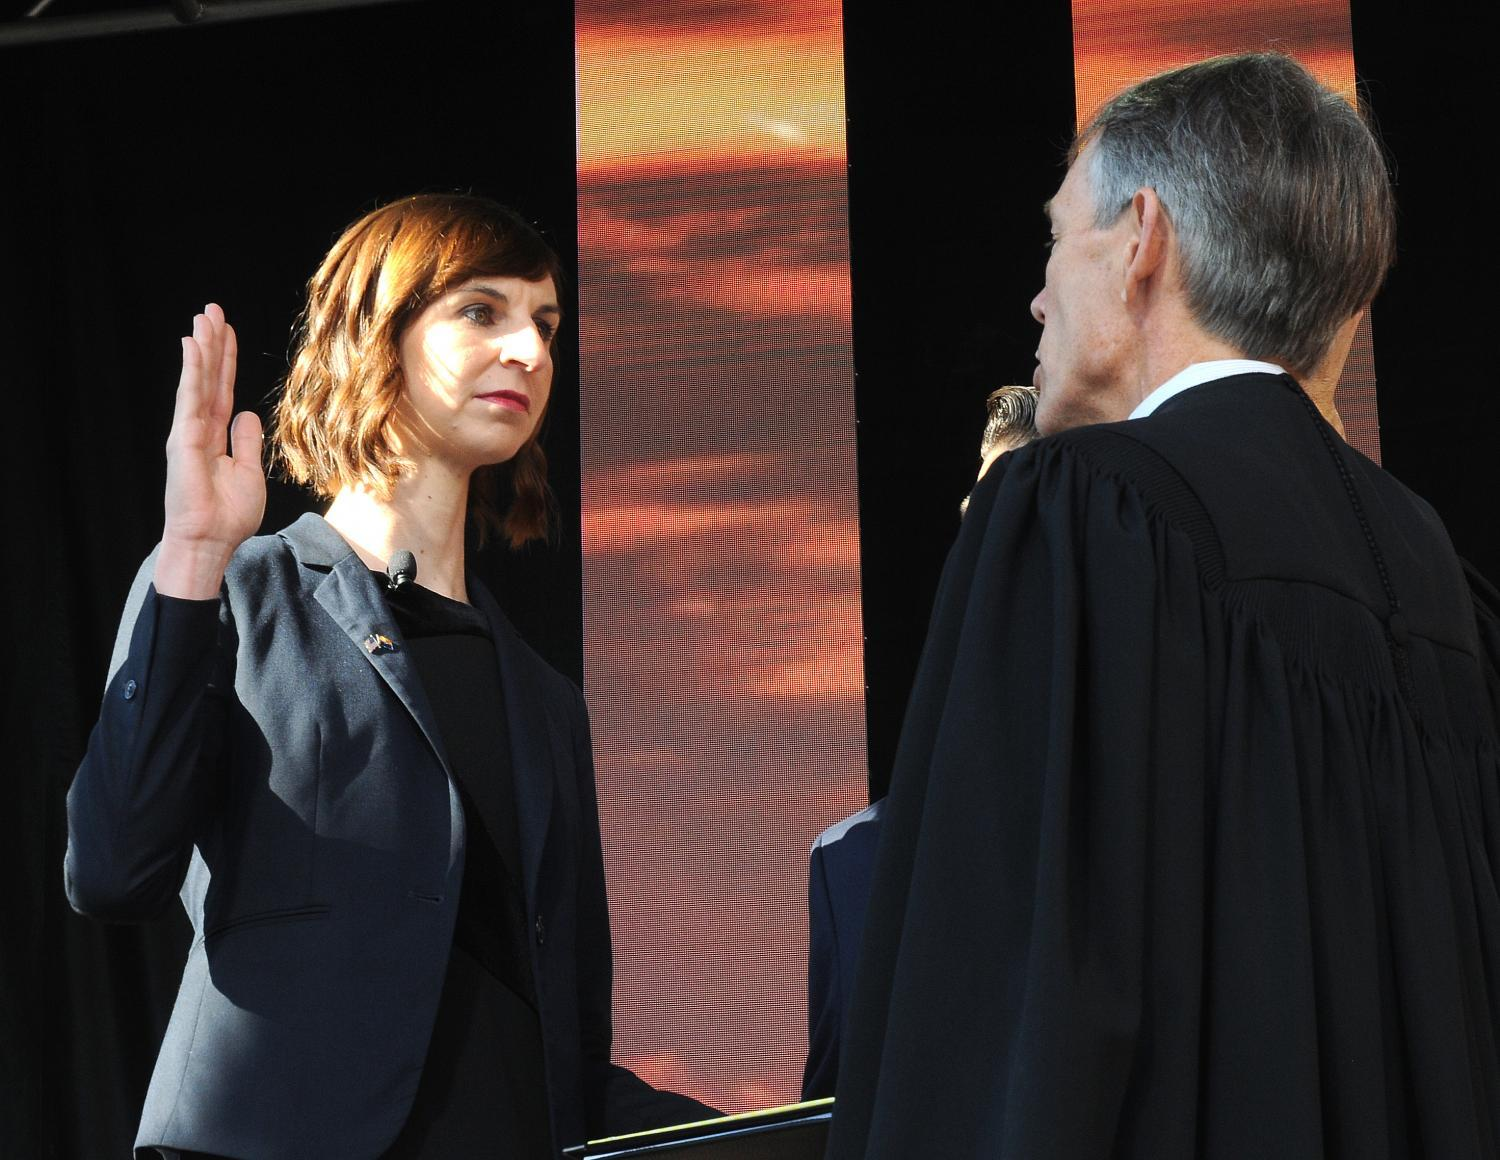 Kathy Hoffman takes the oath of office for superintendent of public instruction